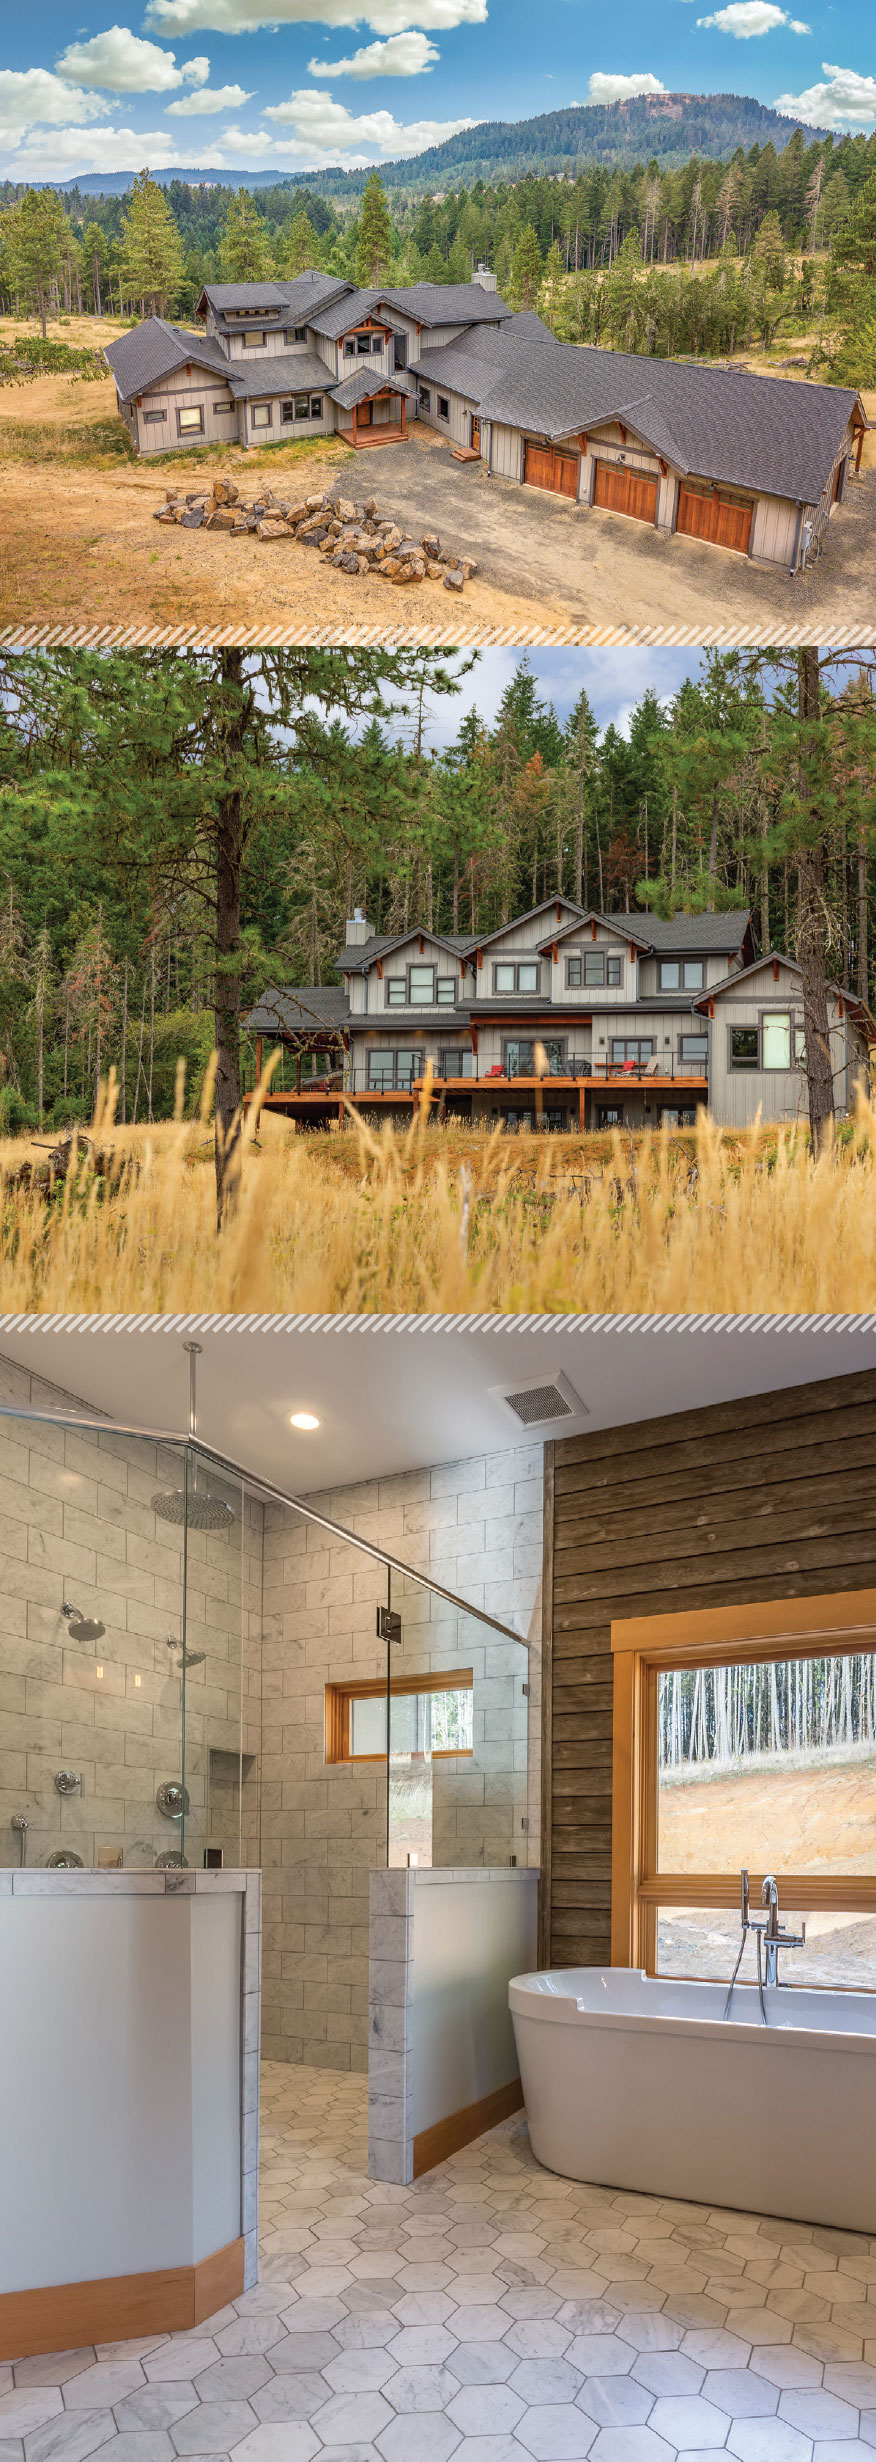 Working With Wood in the Modern West- Bend Houses and Kitchen